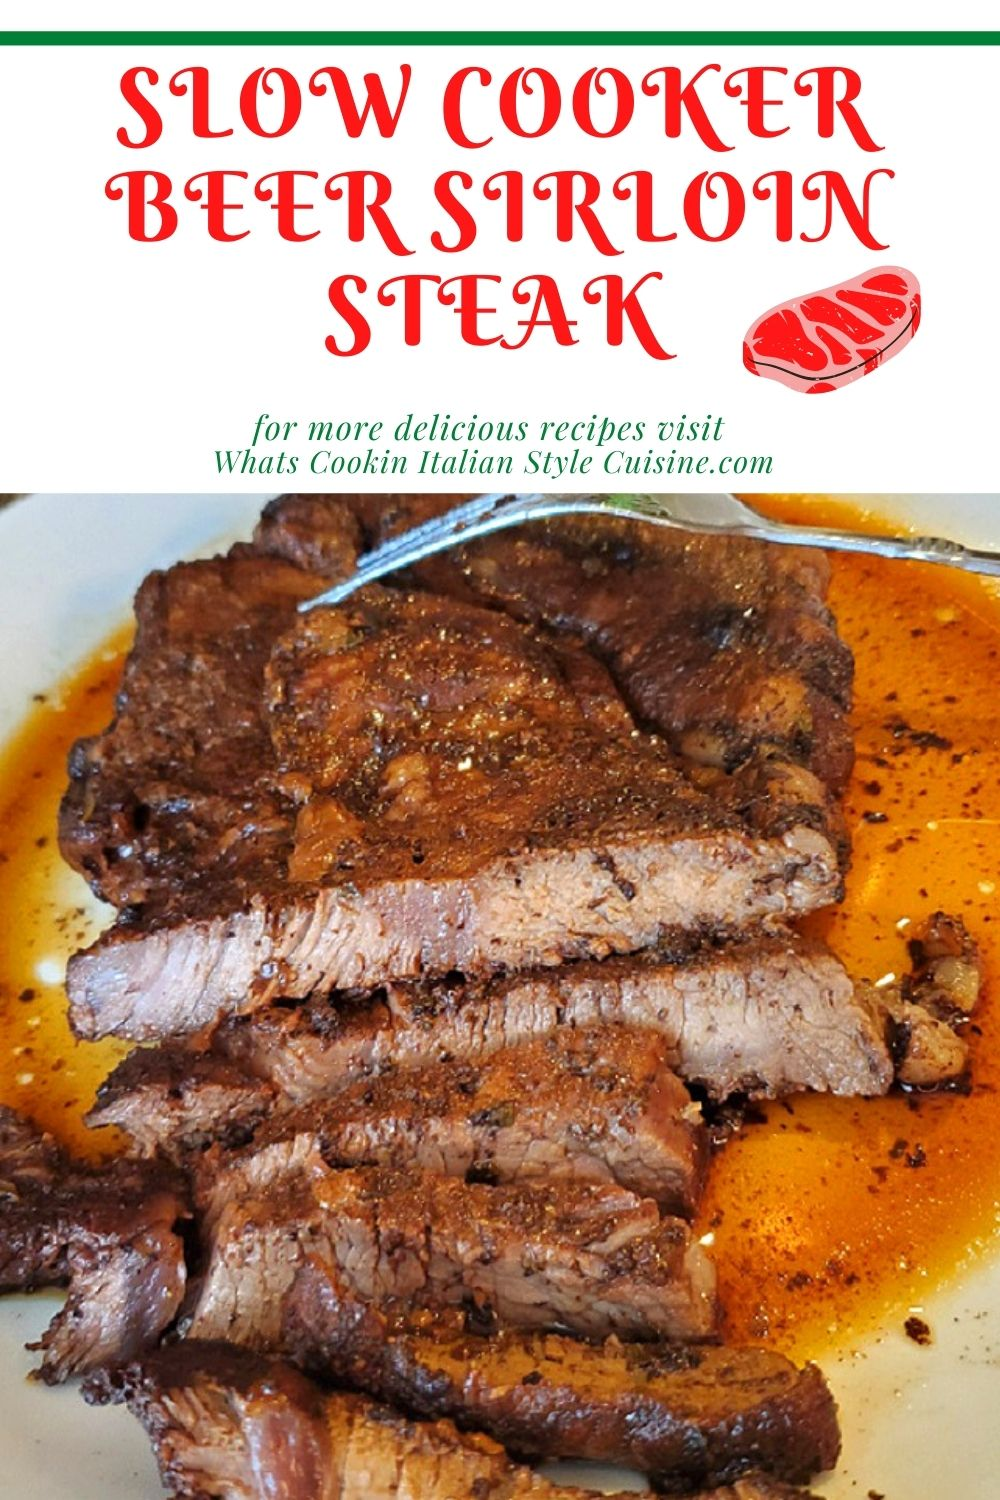 this is a pin for later on how to make beer steak